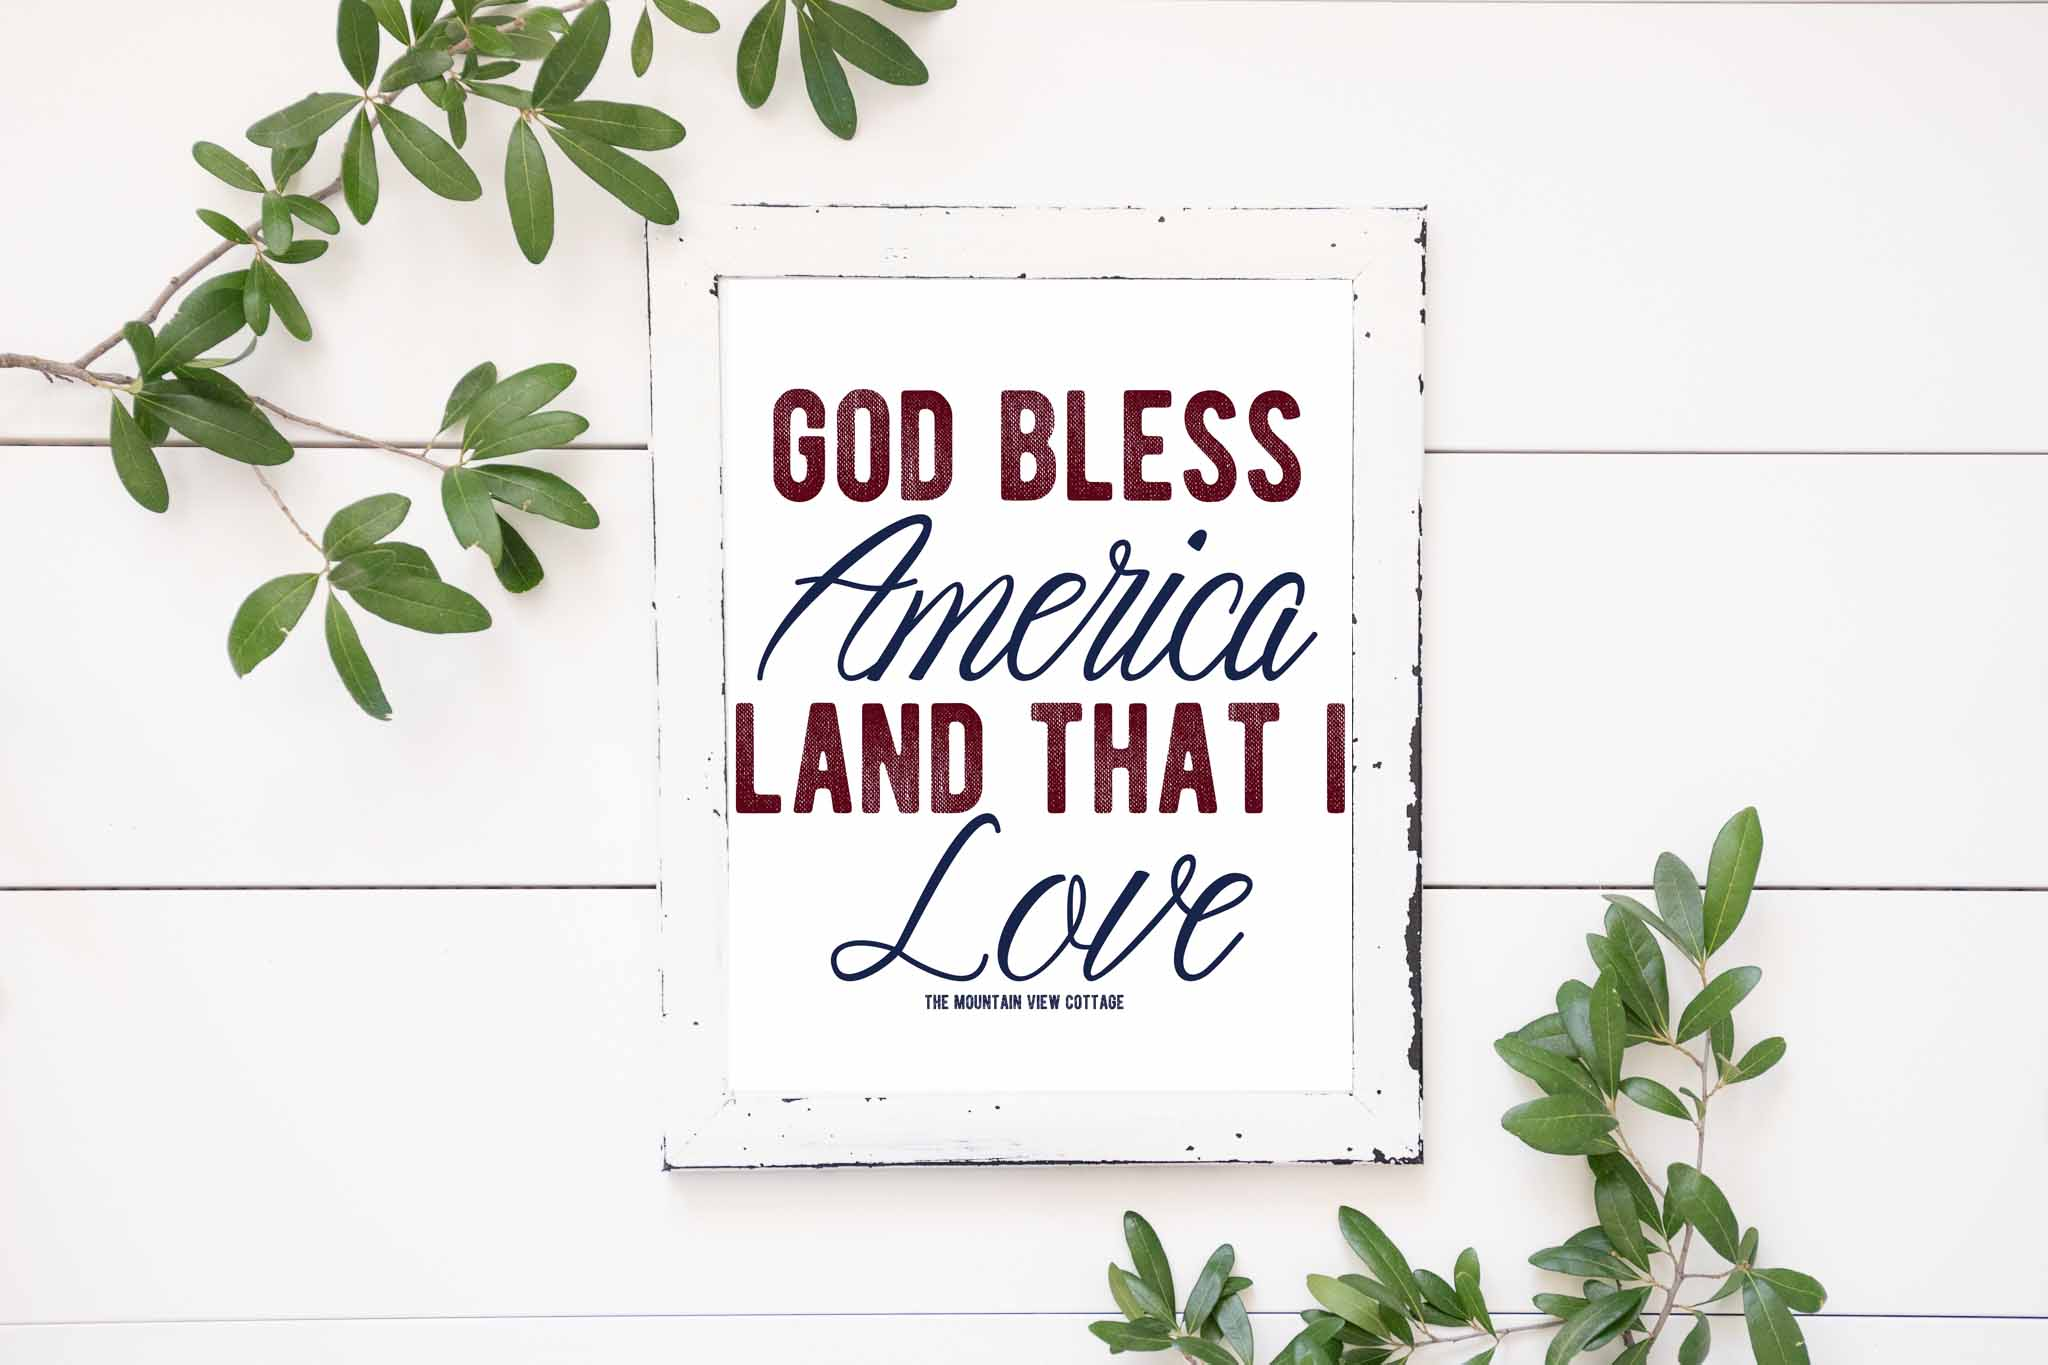 4th of July Printables-God bless america land that I love